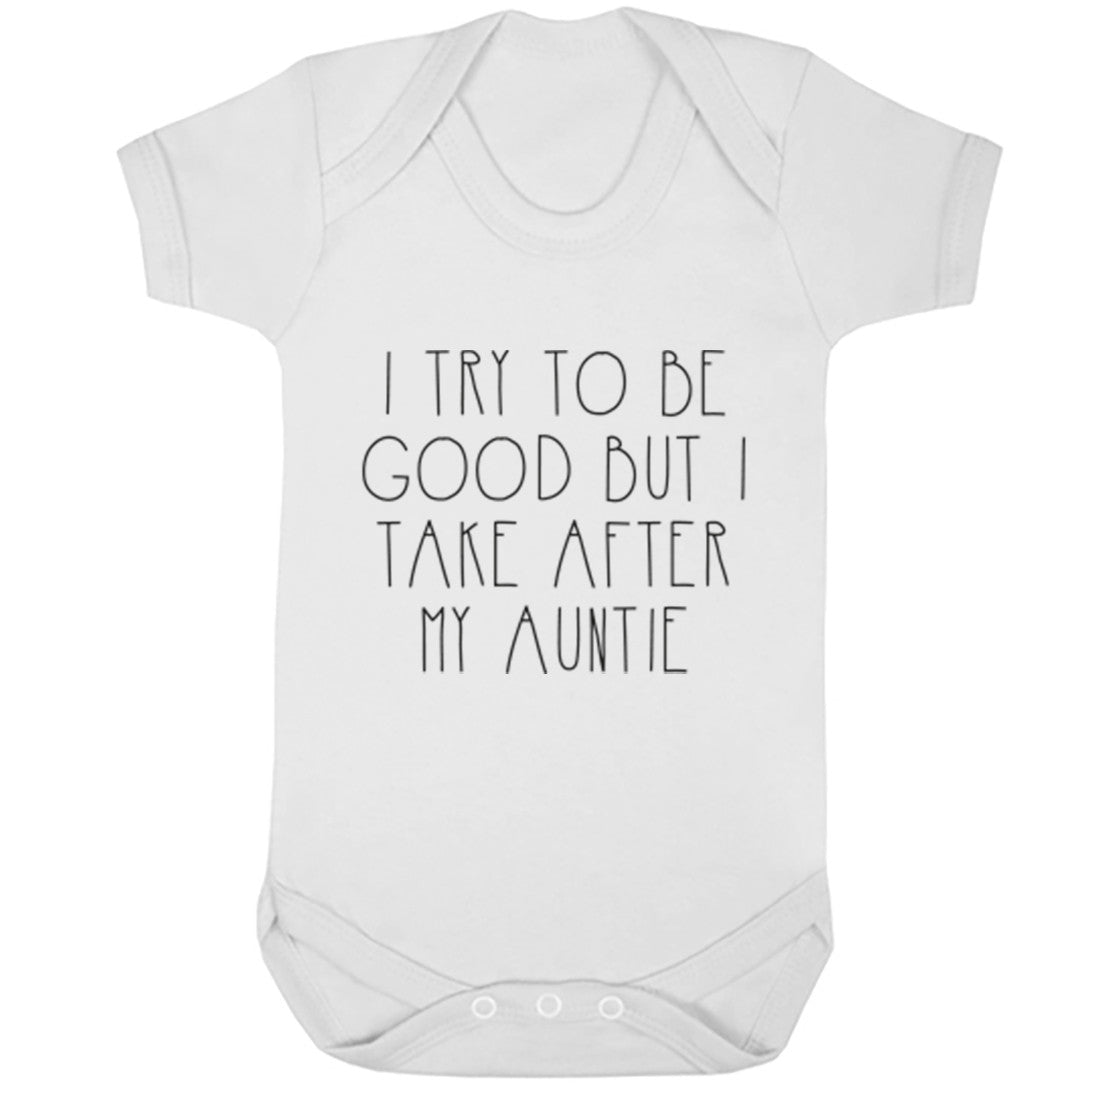 I Try To Be Good But I Take After My Auntie Baby Vest K1533 - Illustrated Identity Ltd.